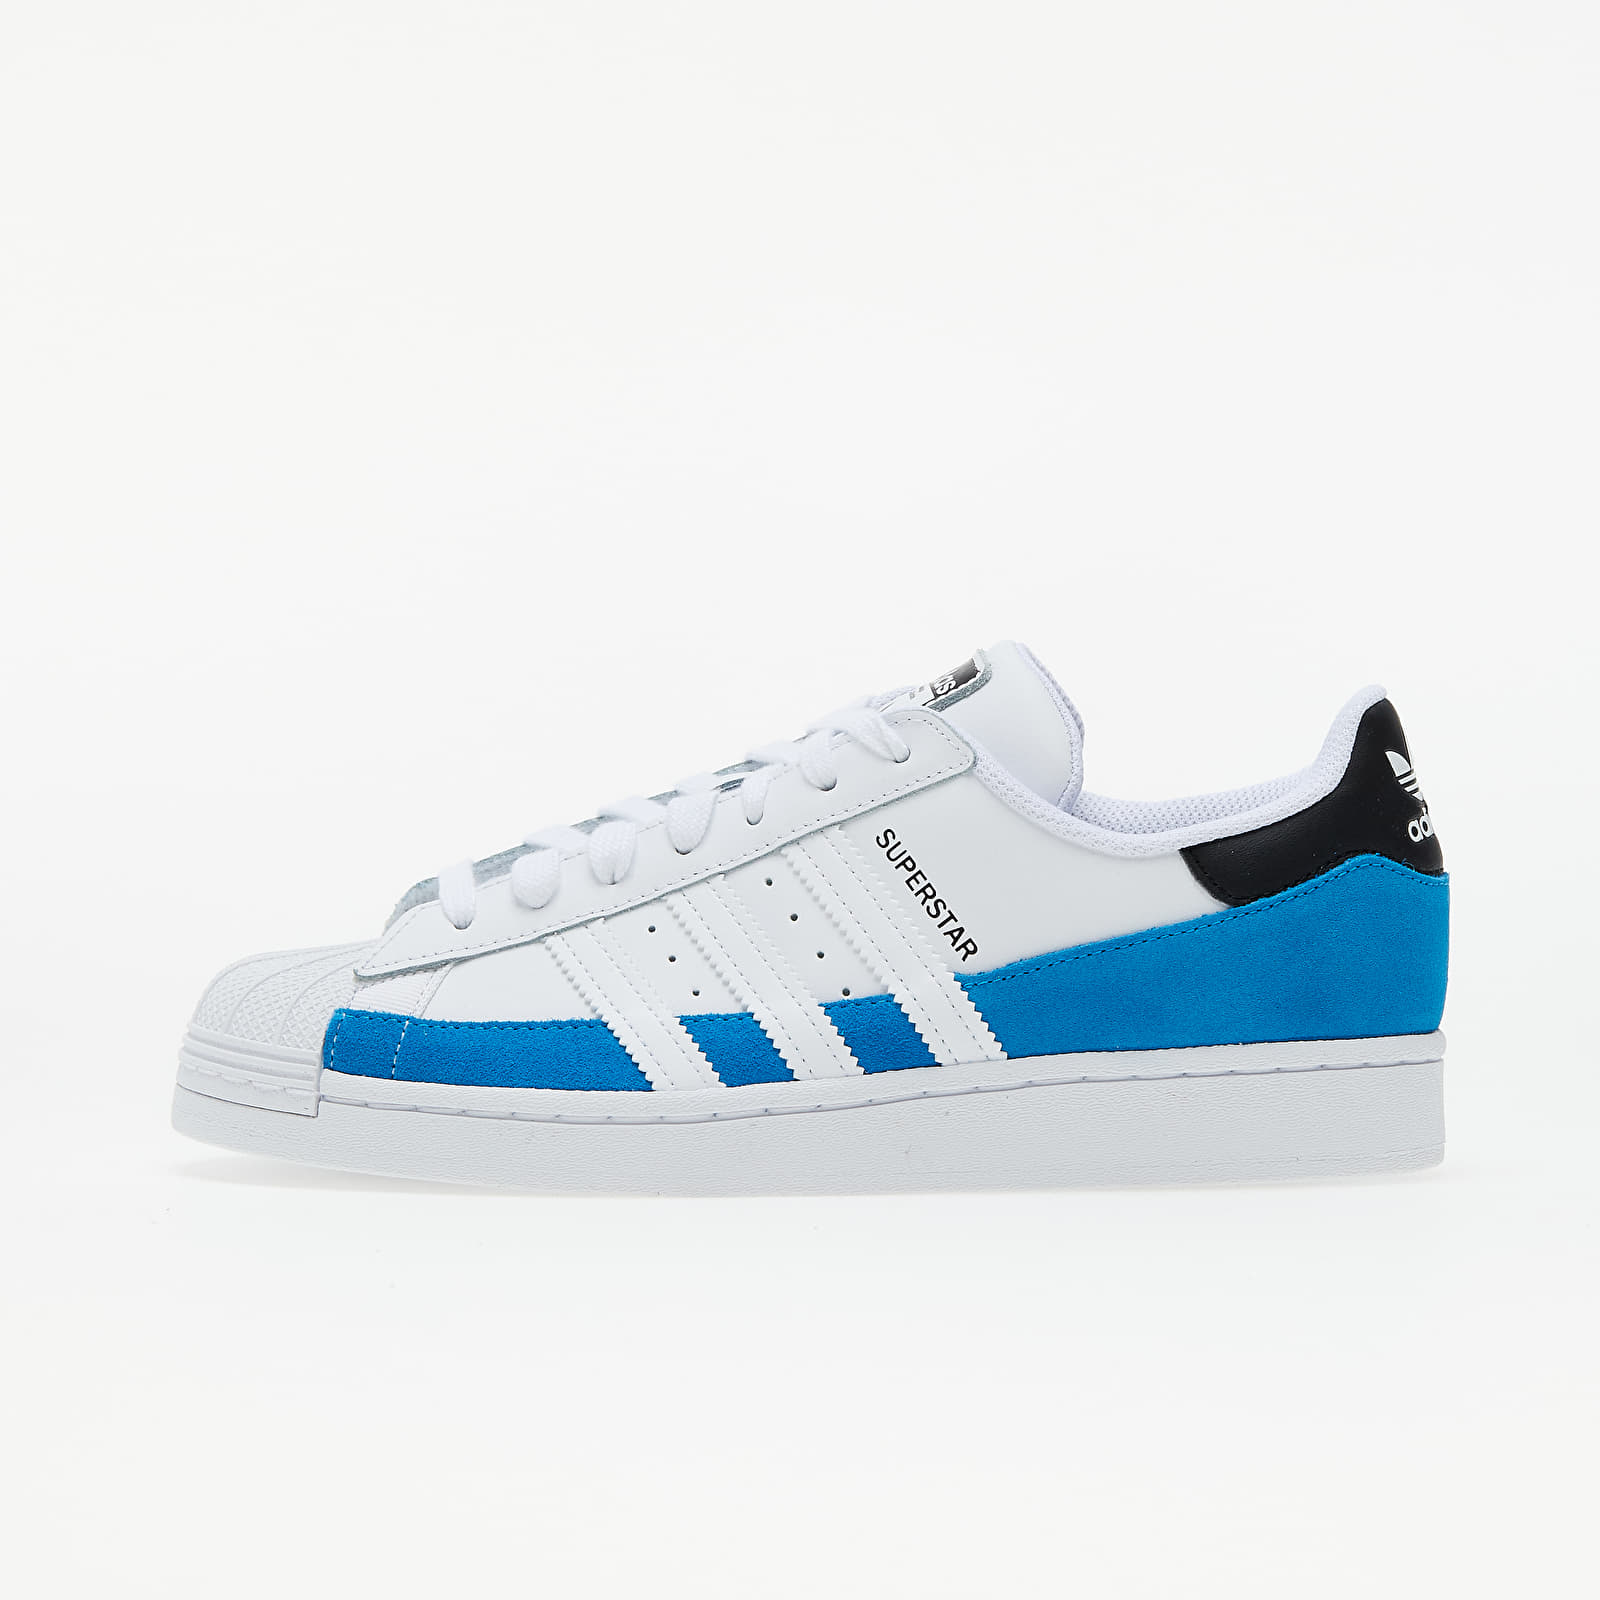 adidas Superstar Bright Blue/ Ftw White/ Core Black EUR 44